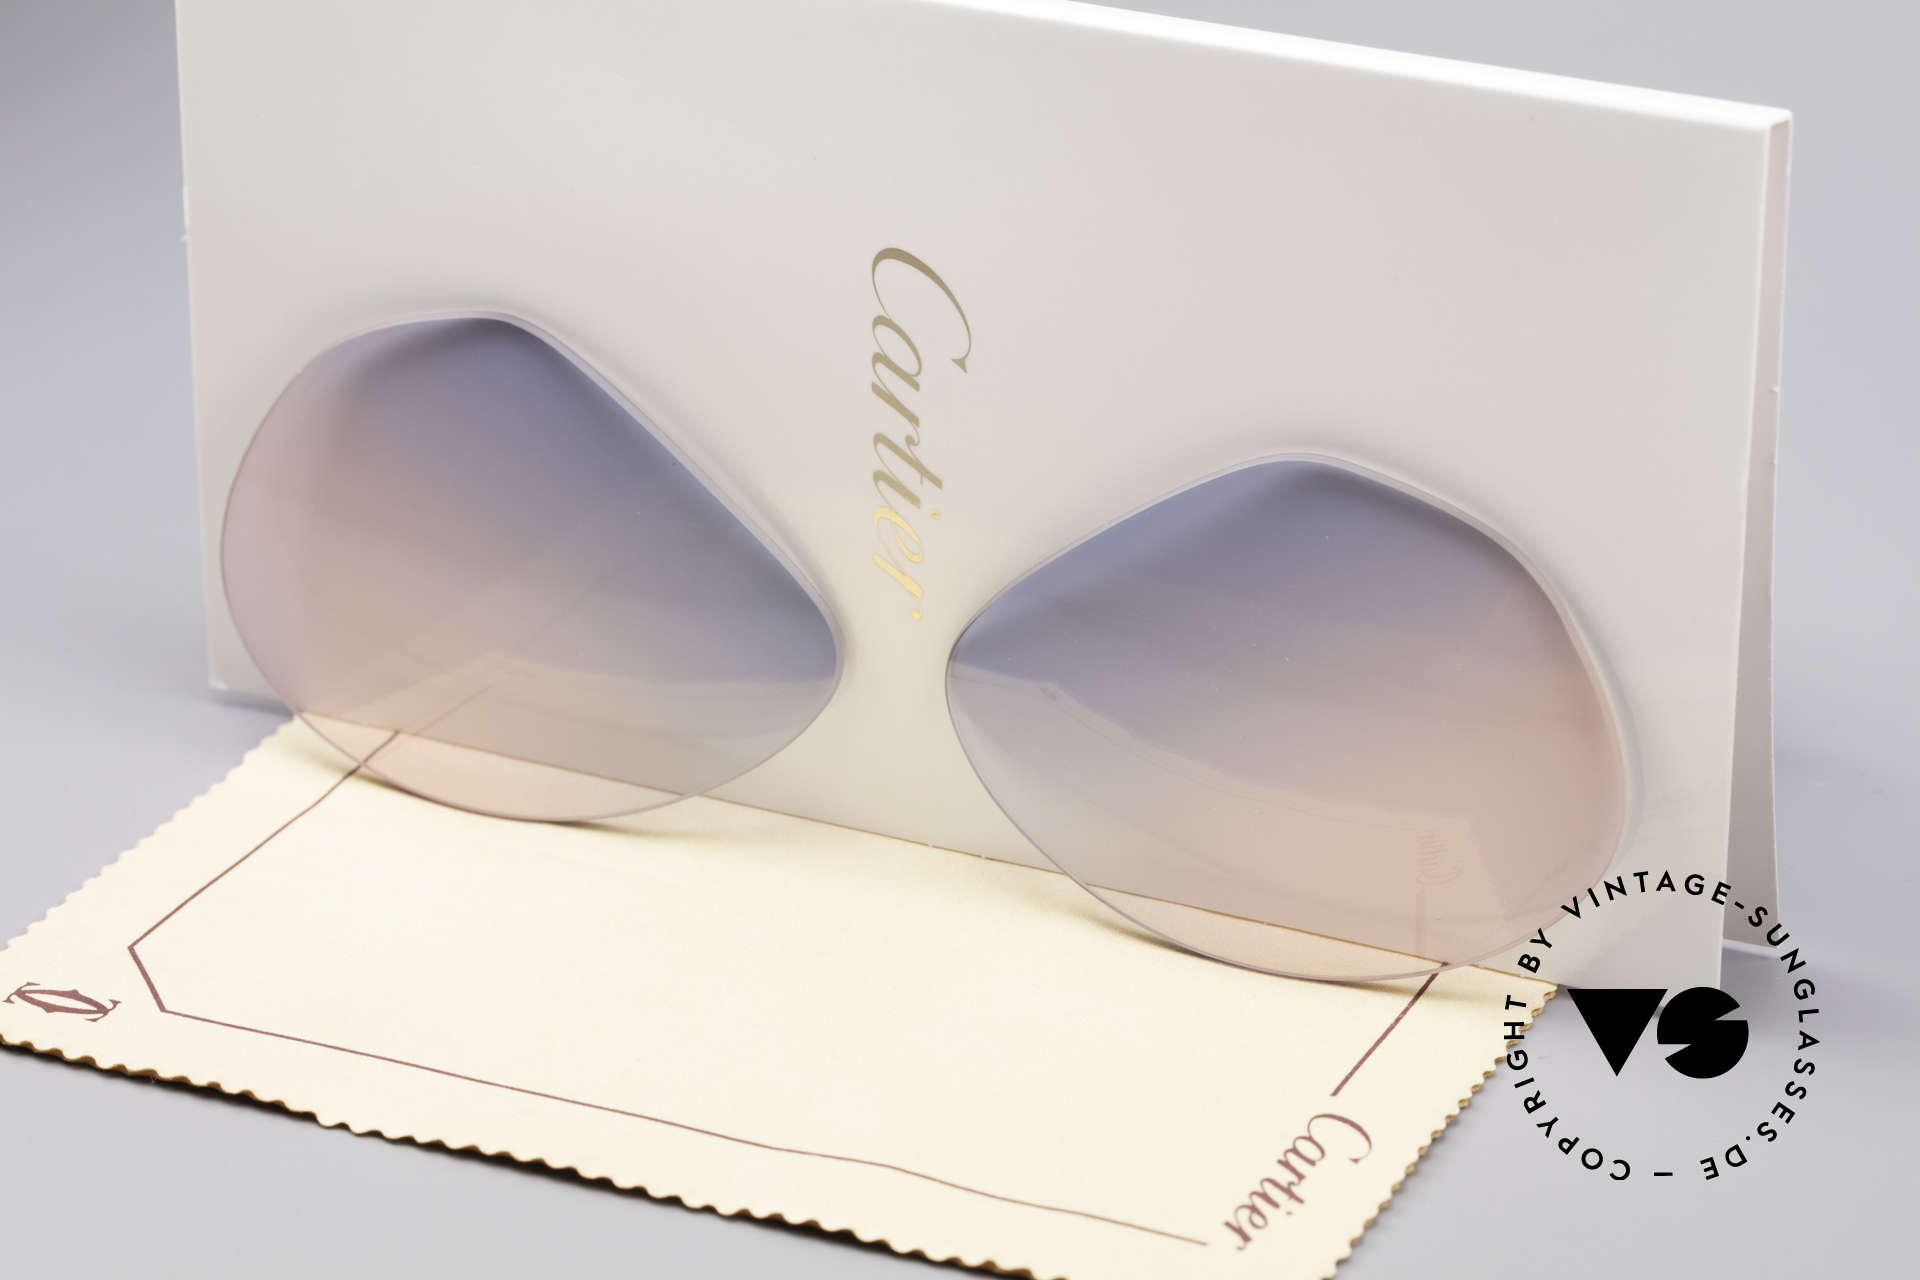 Cartier Vendome Lenses - L Sun Lenses Blue Pink Gradient, new CR39 UV400 plastic lenses (for 100% UV protection), Made for Men